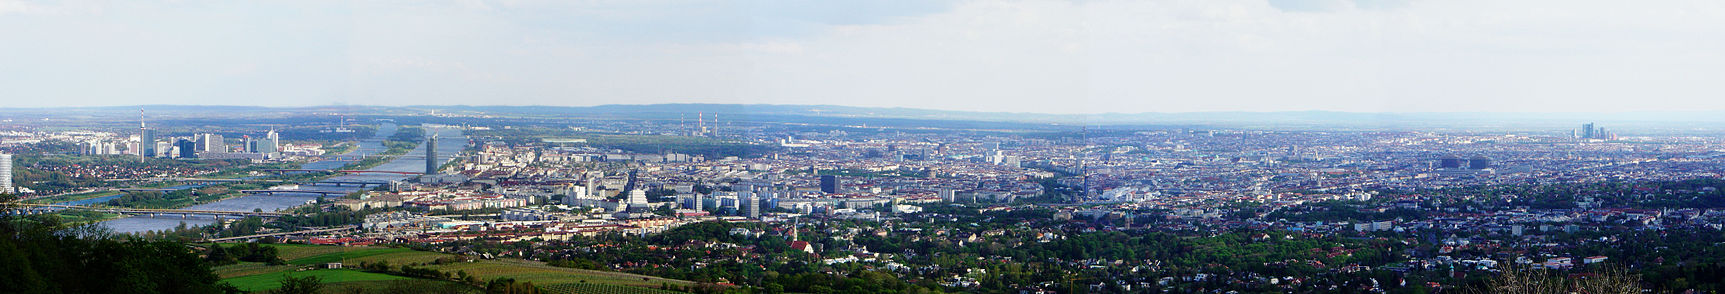 Panorama over Wien, fra Kahlenberg